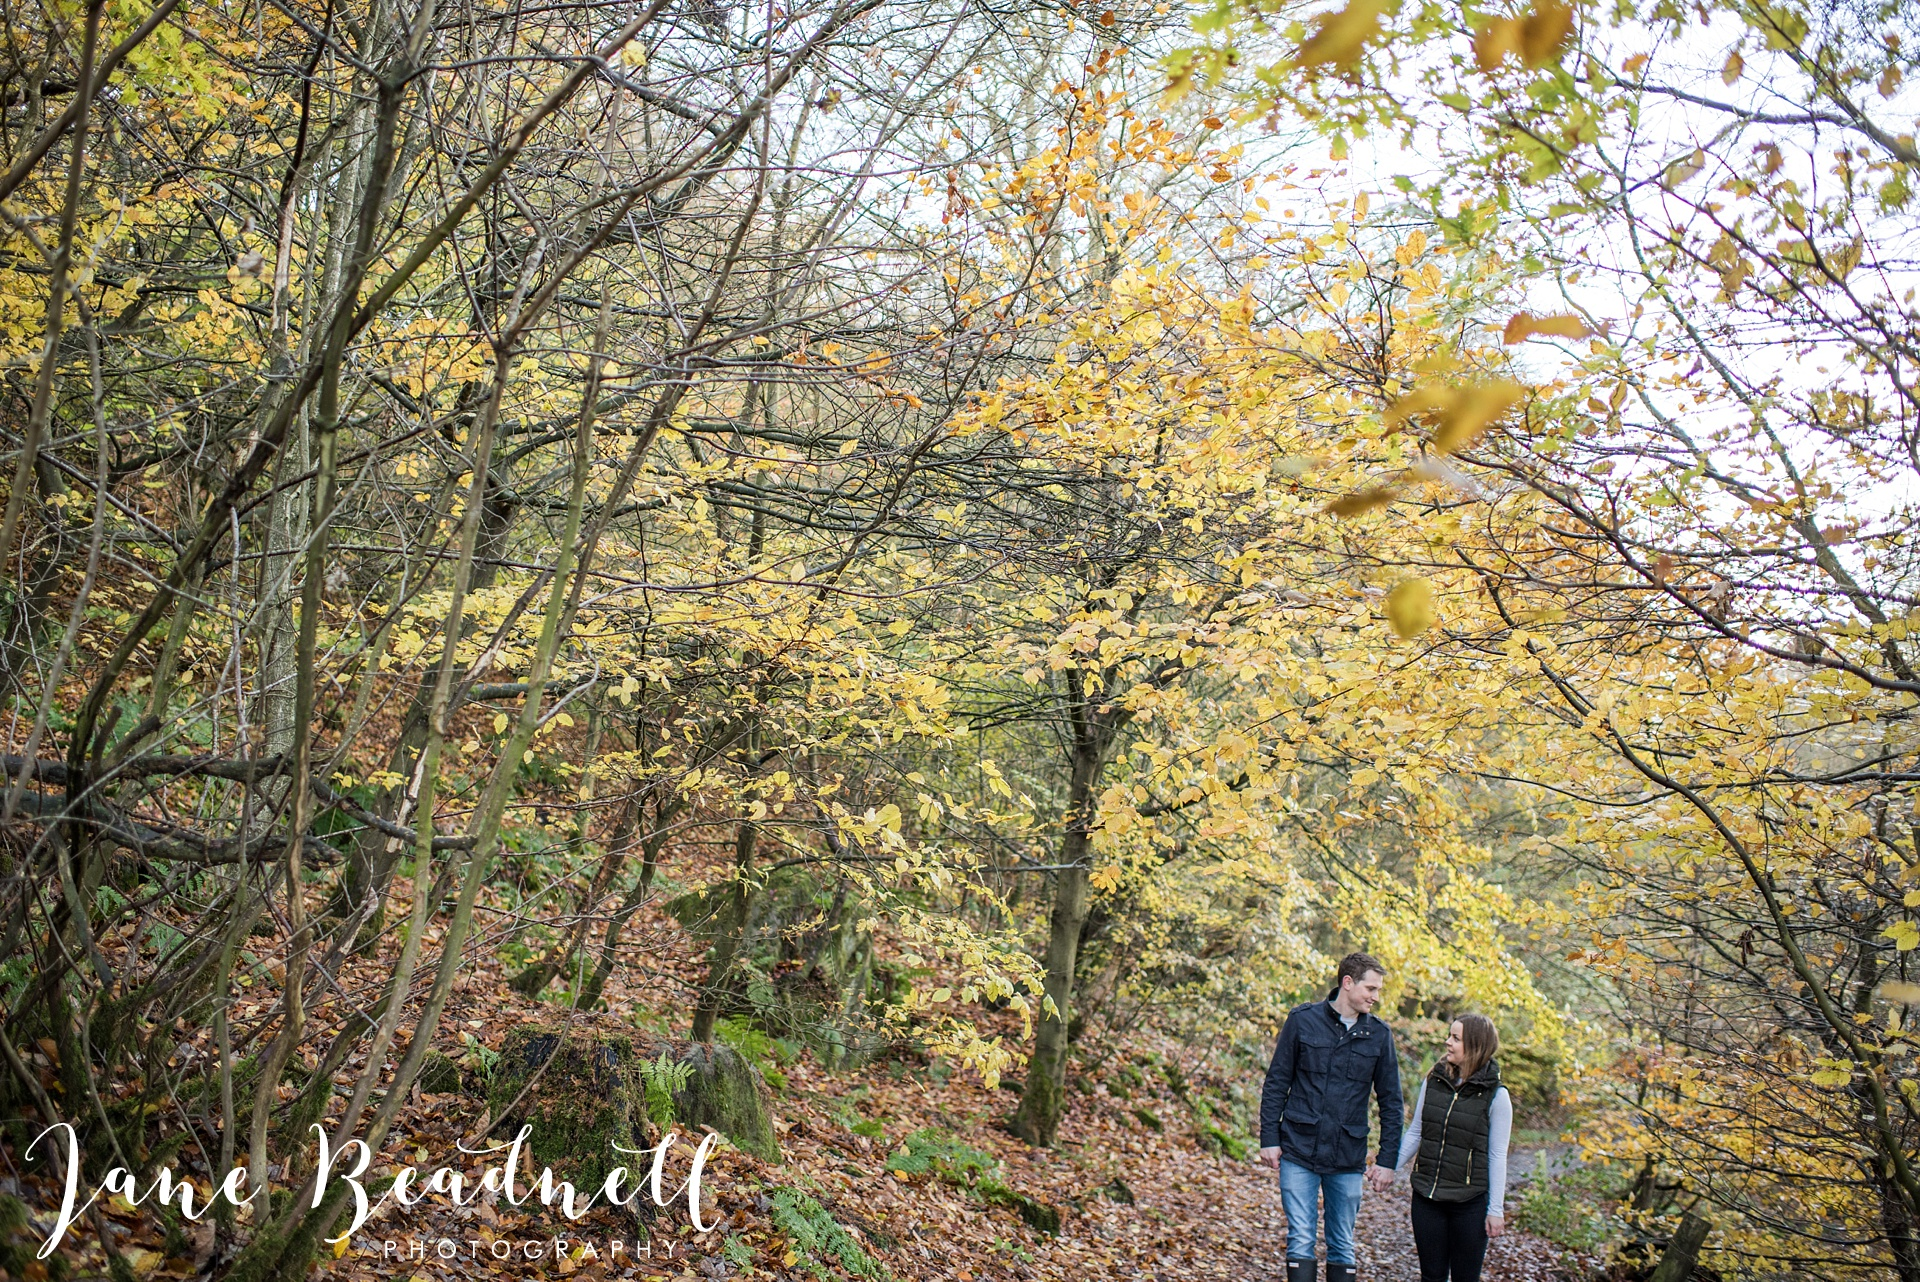 engagement-shoot-yorkshire-wedding-photographer-jane-beadnell-photography-uk-and-destination-wedding-photographer-engagement-shoot_0012